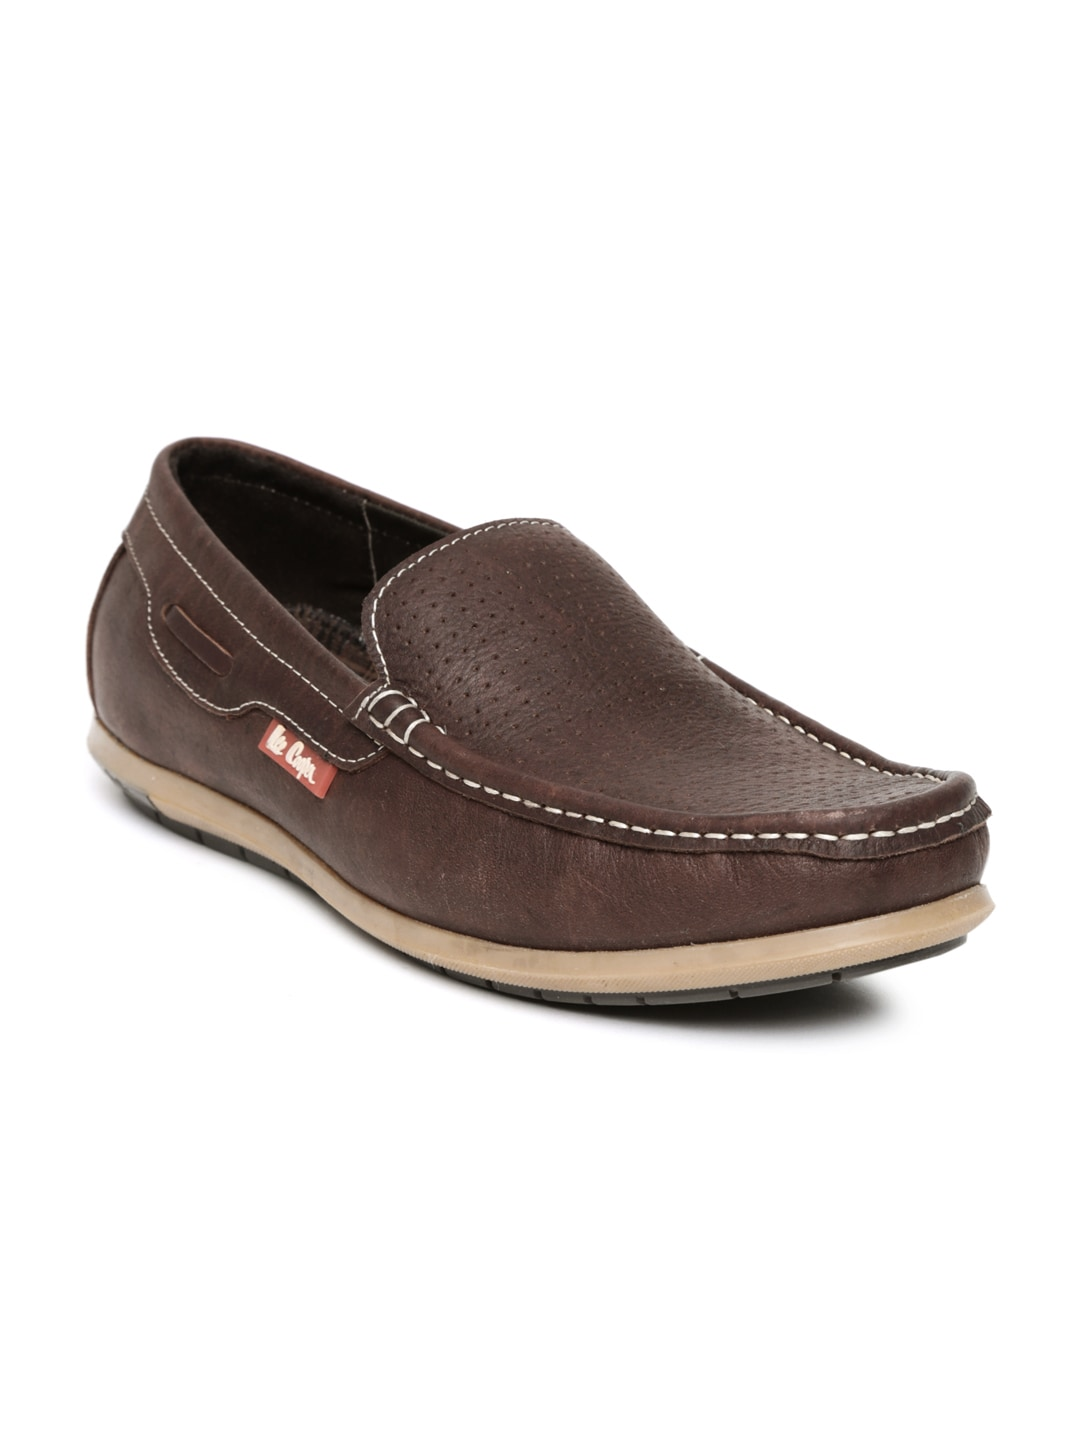 37ee6e110a3 Lee cooper lc2136-brown Men Brown Leather Casual Shoes- Price in India